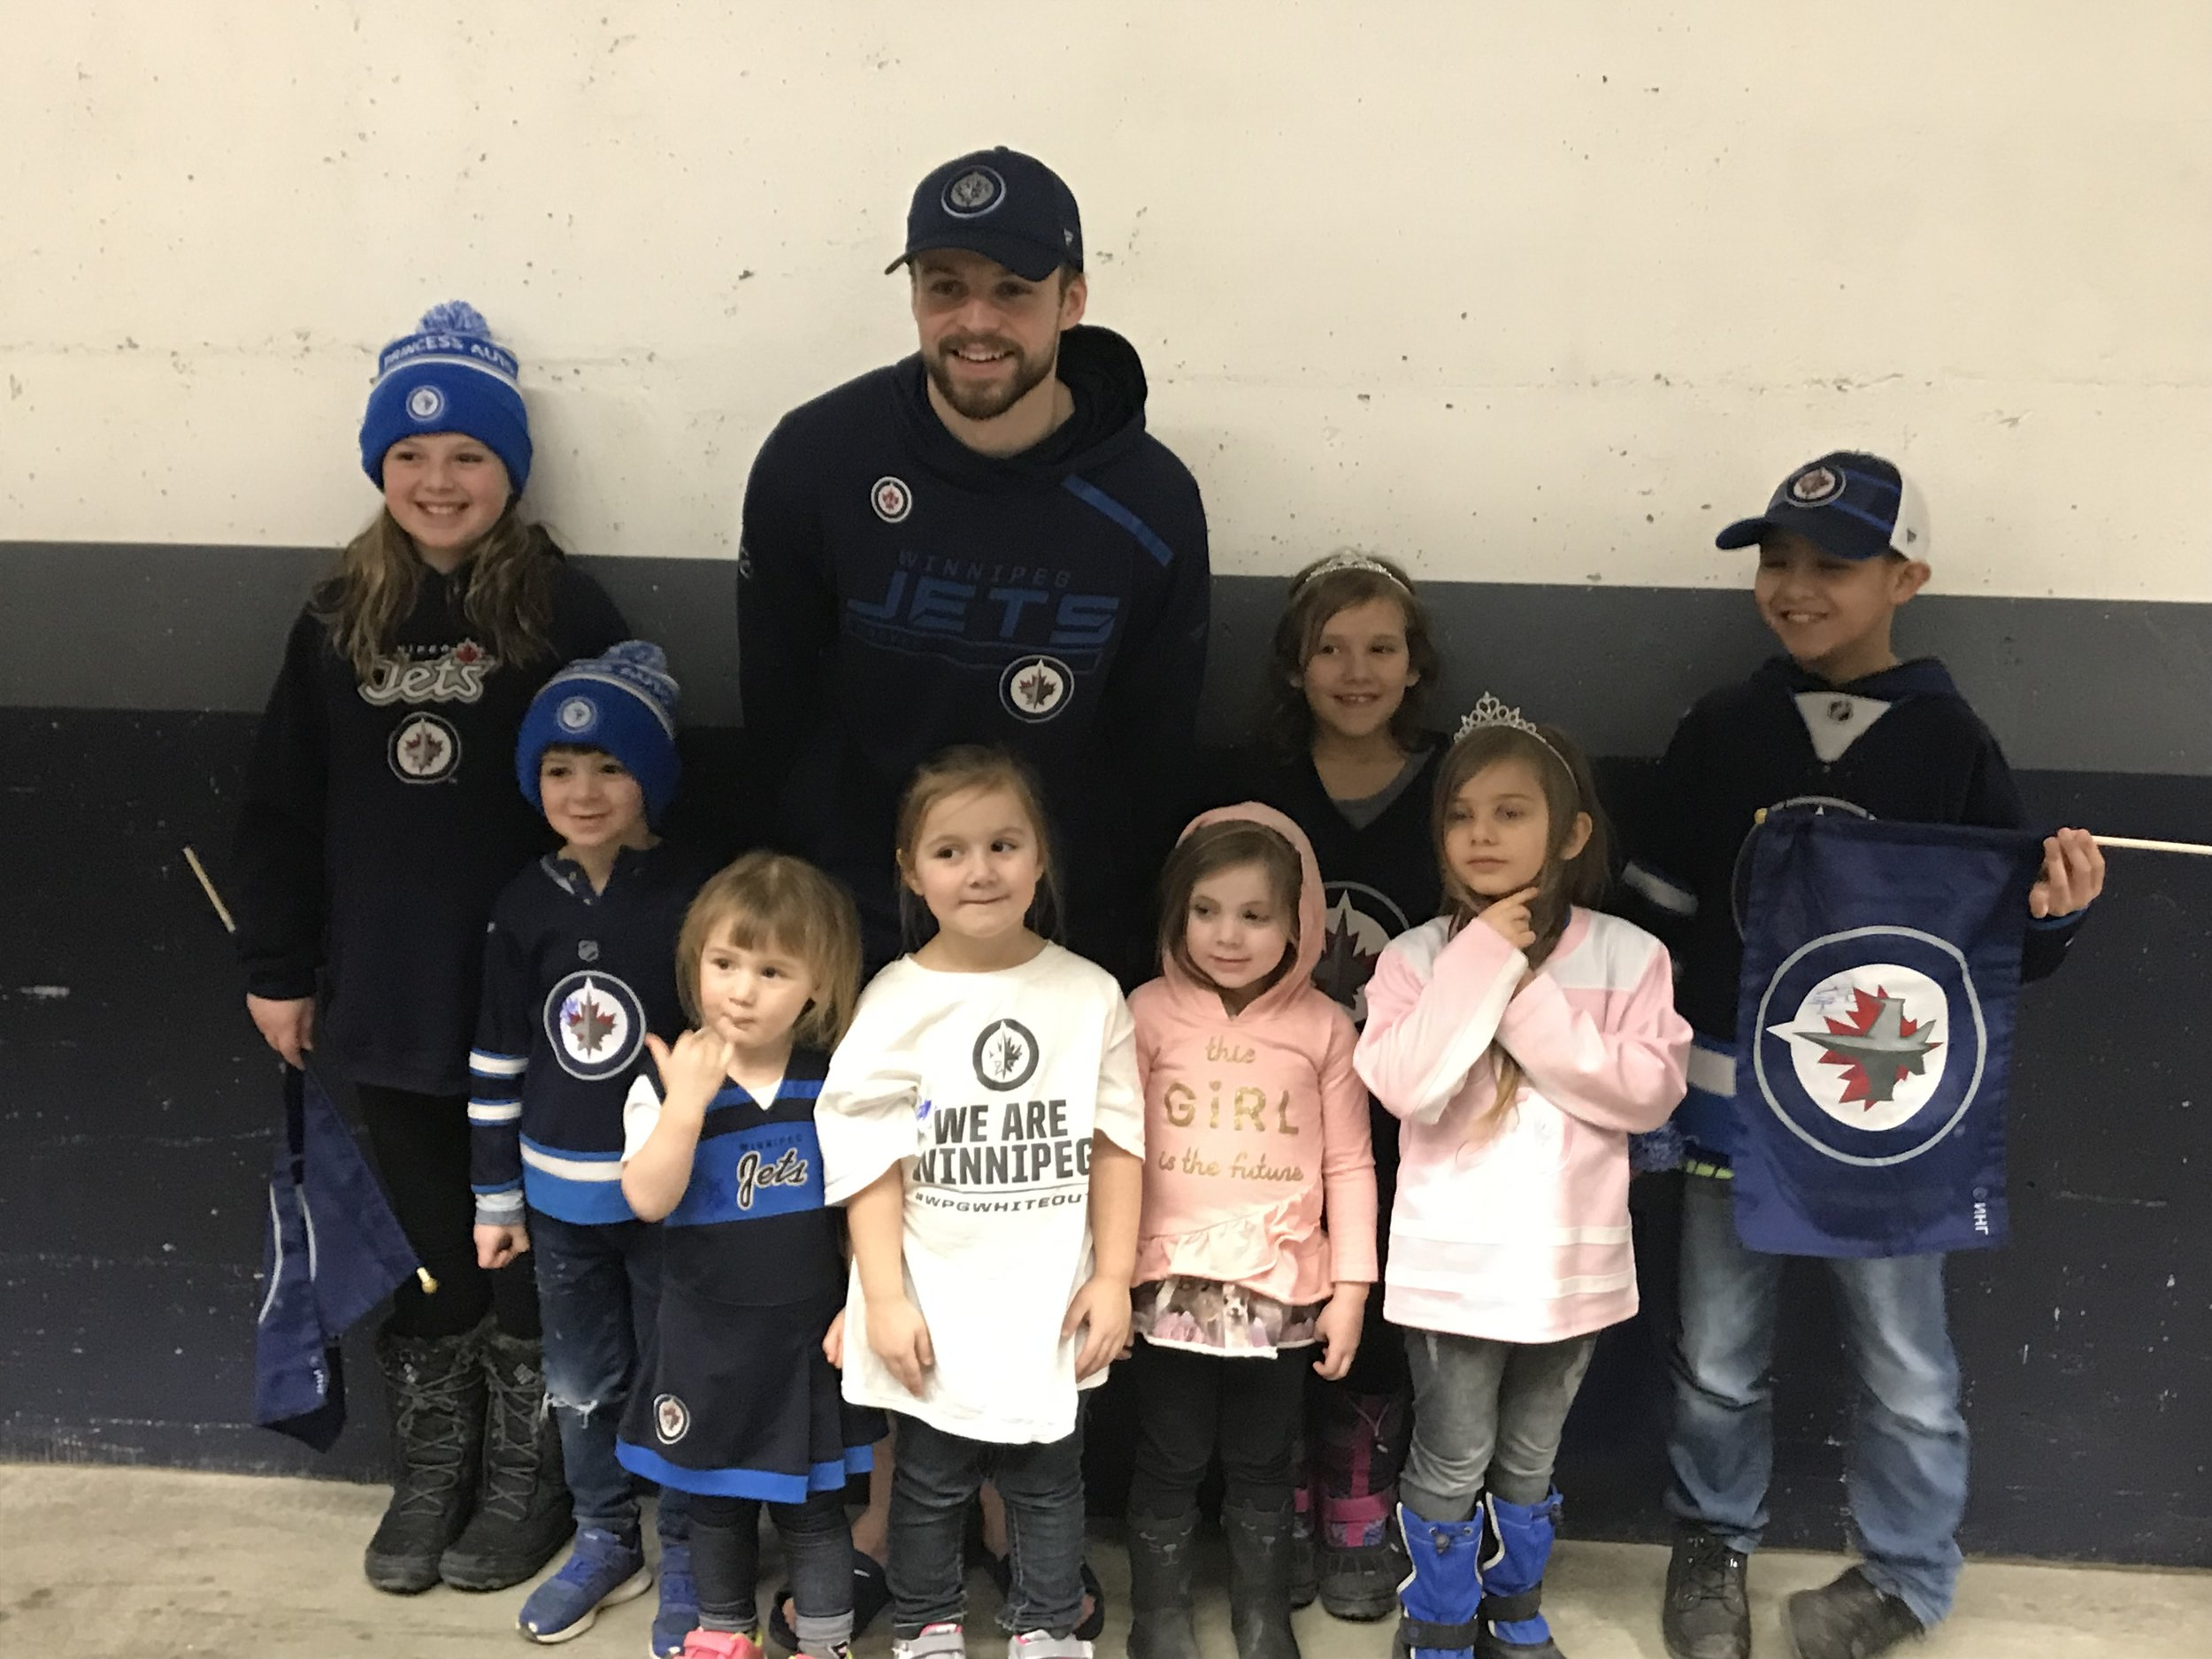 Pictured: Josh takes time to meet and greet a wonderful group of Dream Kids after a Winnipeg Jets game